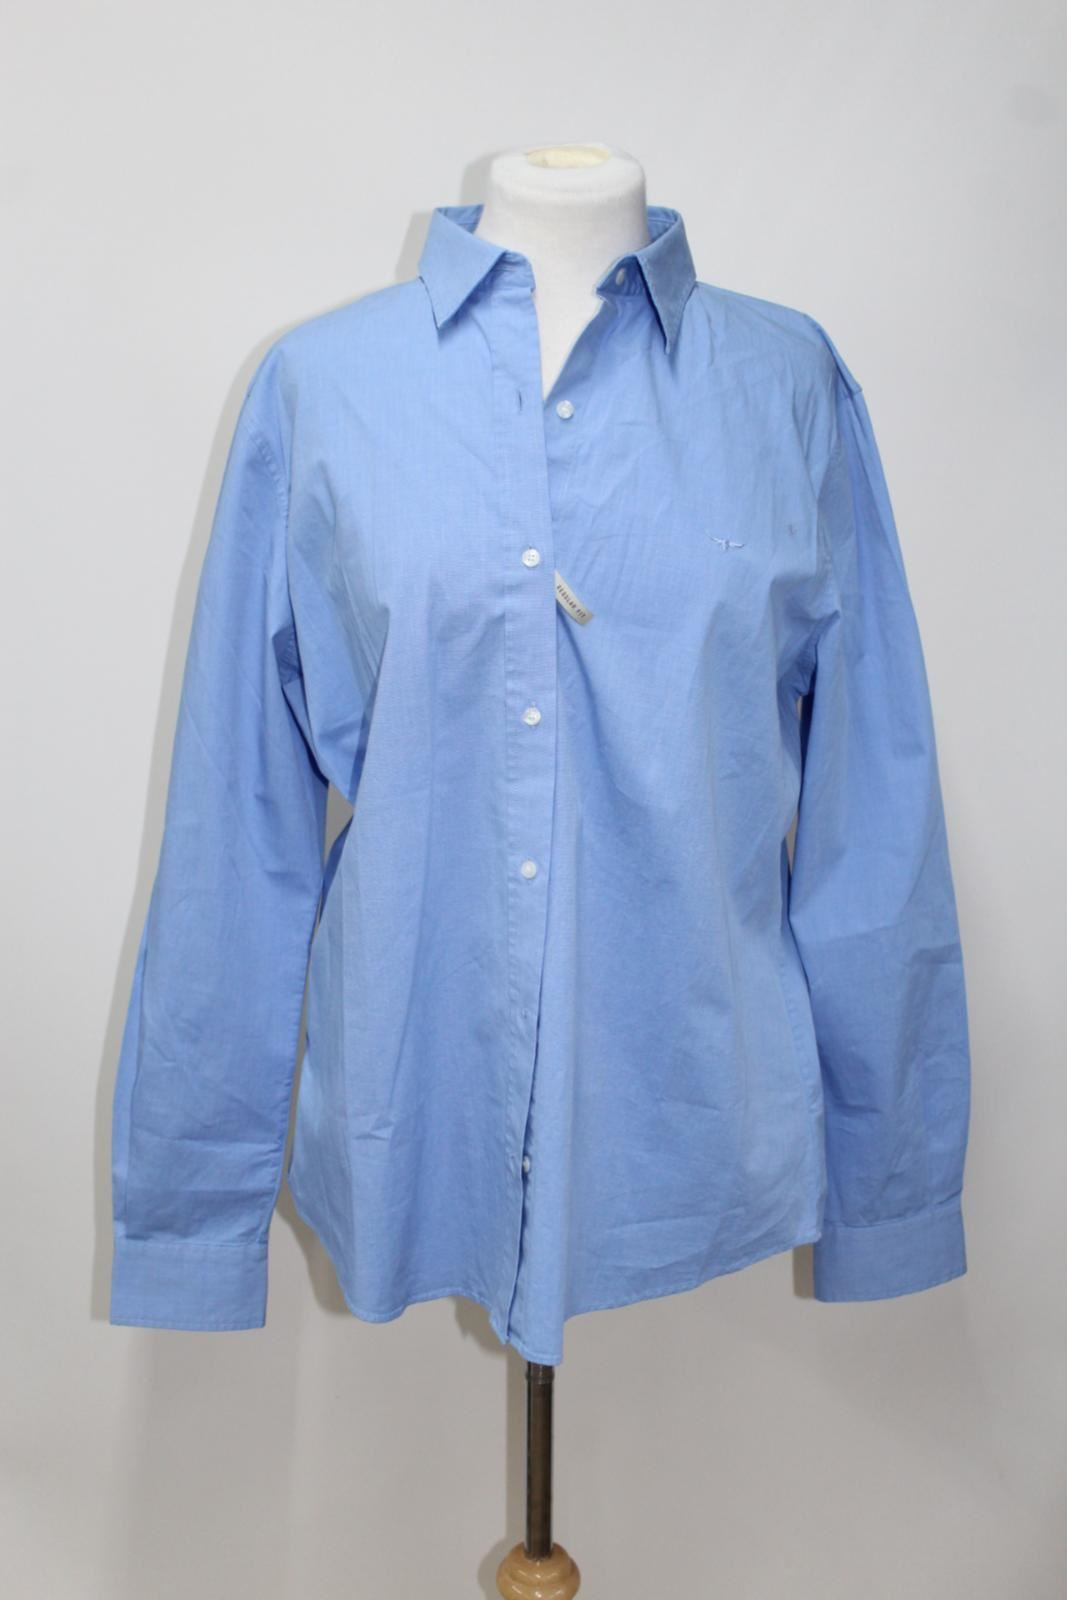 Shirt Stretch Blue Bnwt Cotton R Uk16 Cornflower Williams Nicole m Ladies xxzqTRZ0